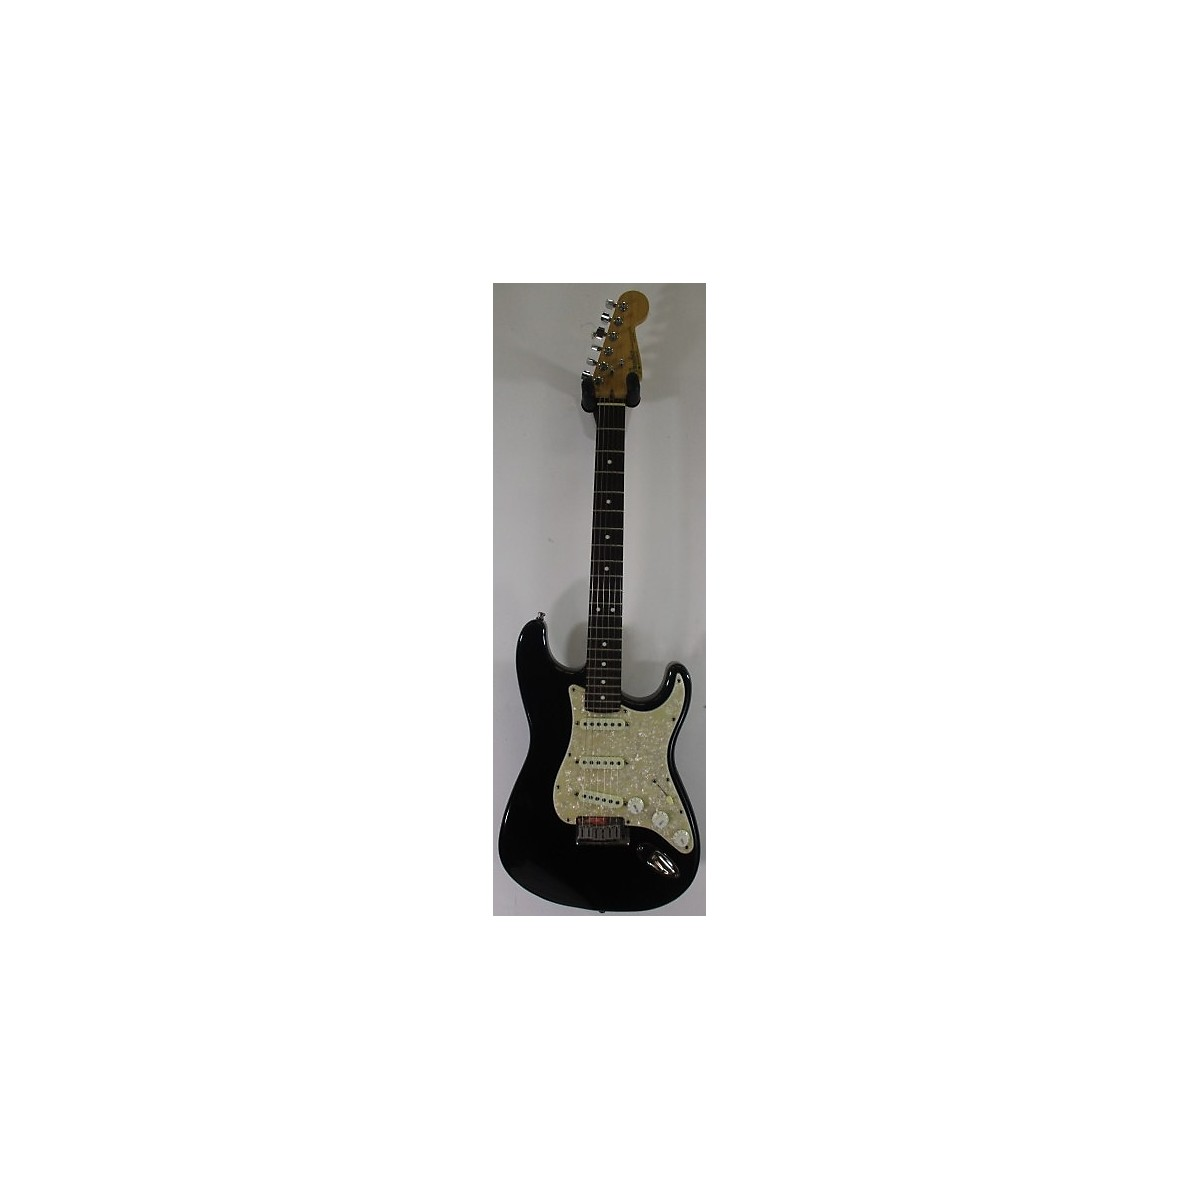 Fender 1991 American Standard Stratocaster Solid Body Electric Guitar